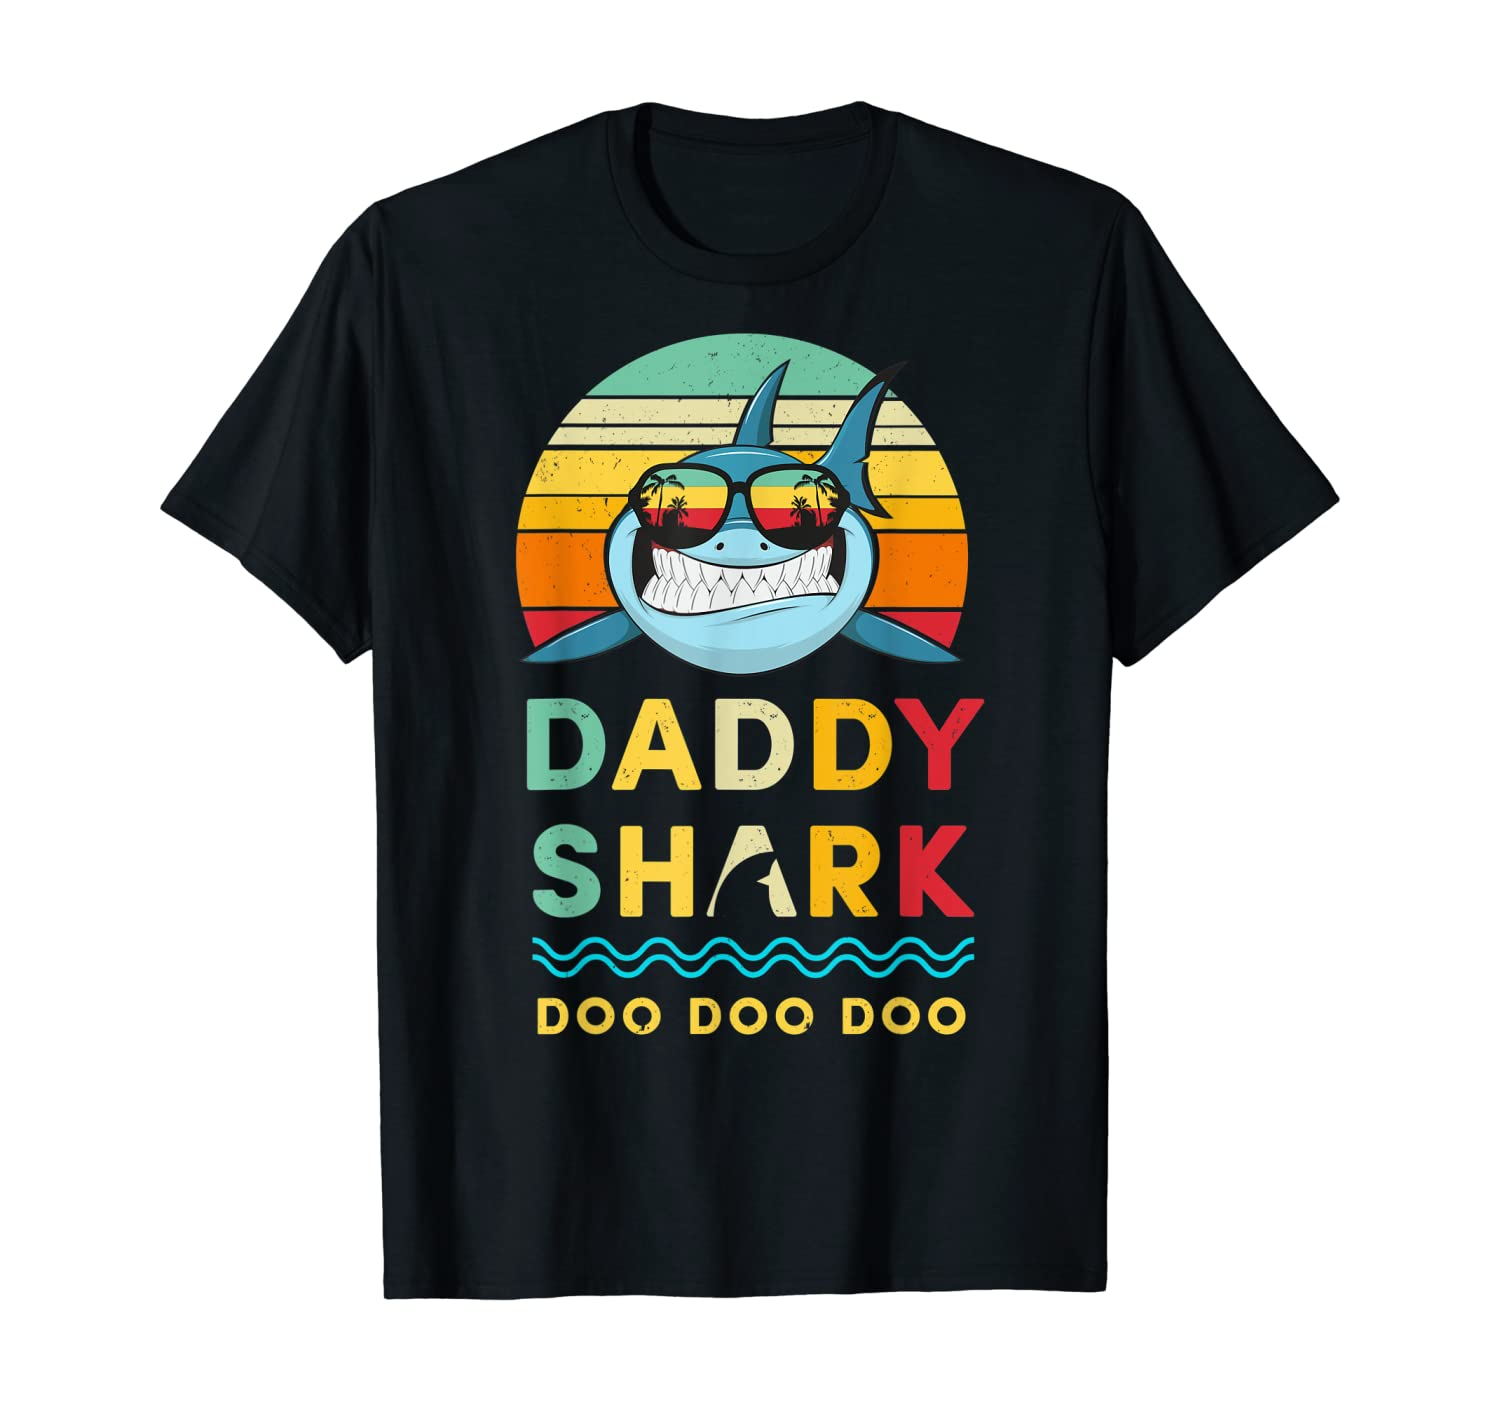 Daddy Shark Shirt Doo Doo Doo Fathers Day Gift T-Shirt